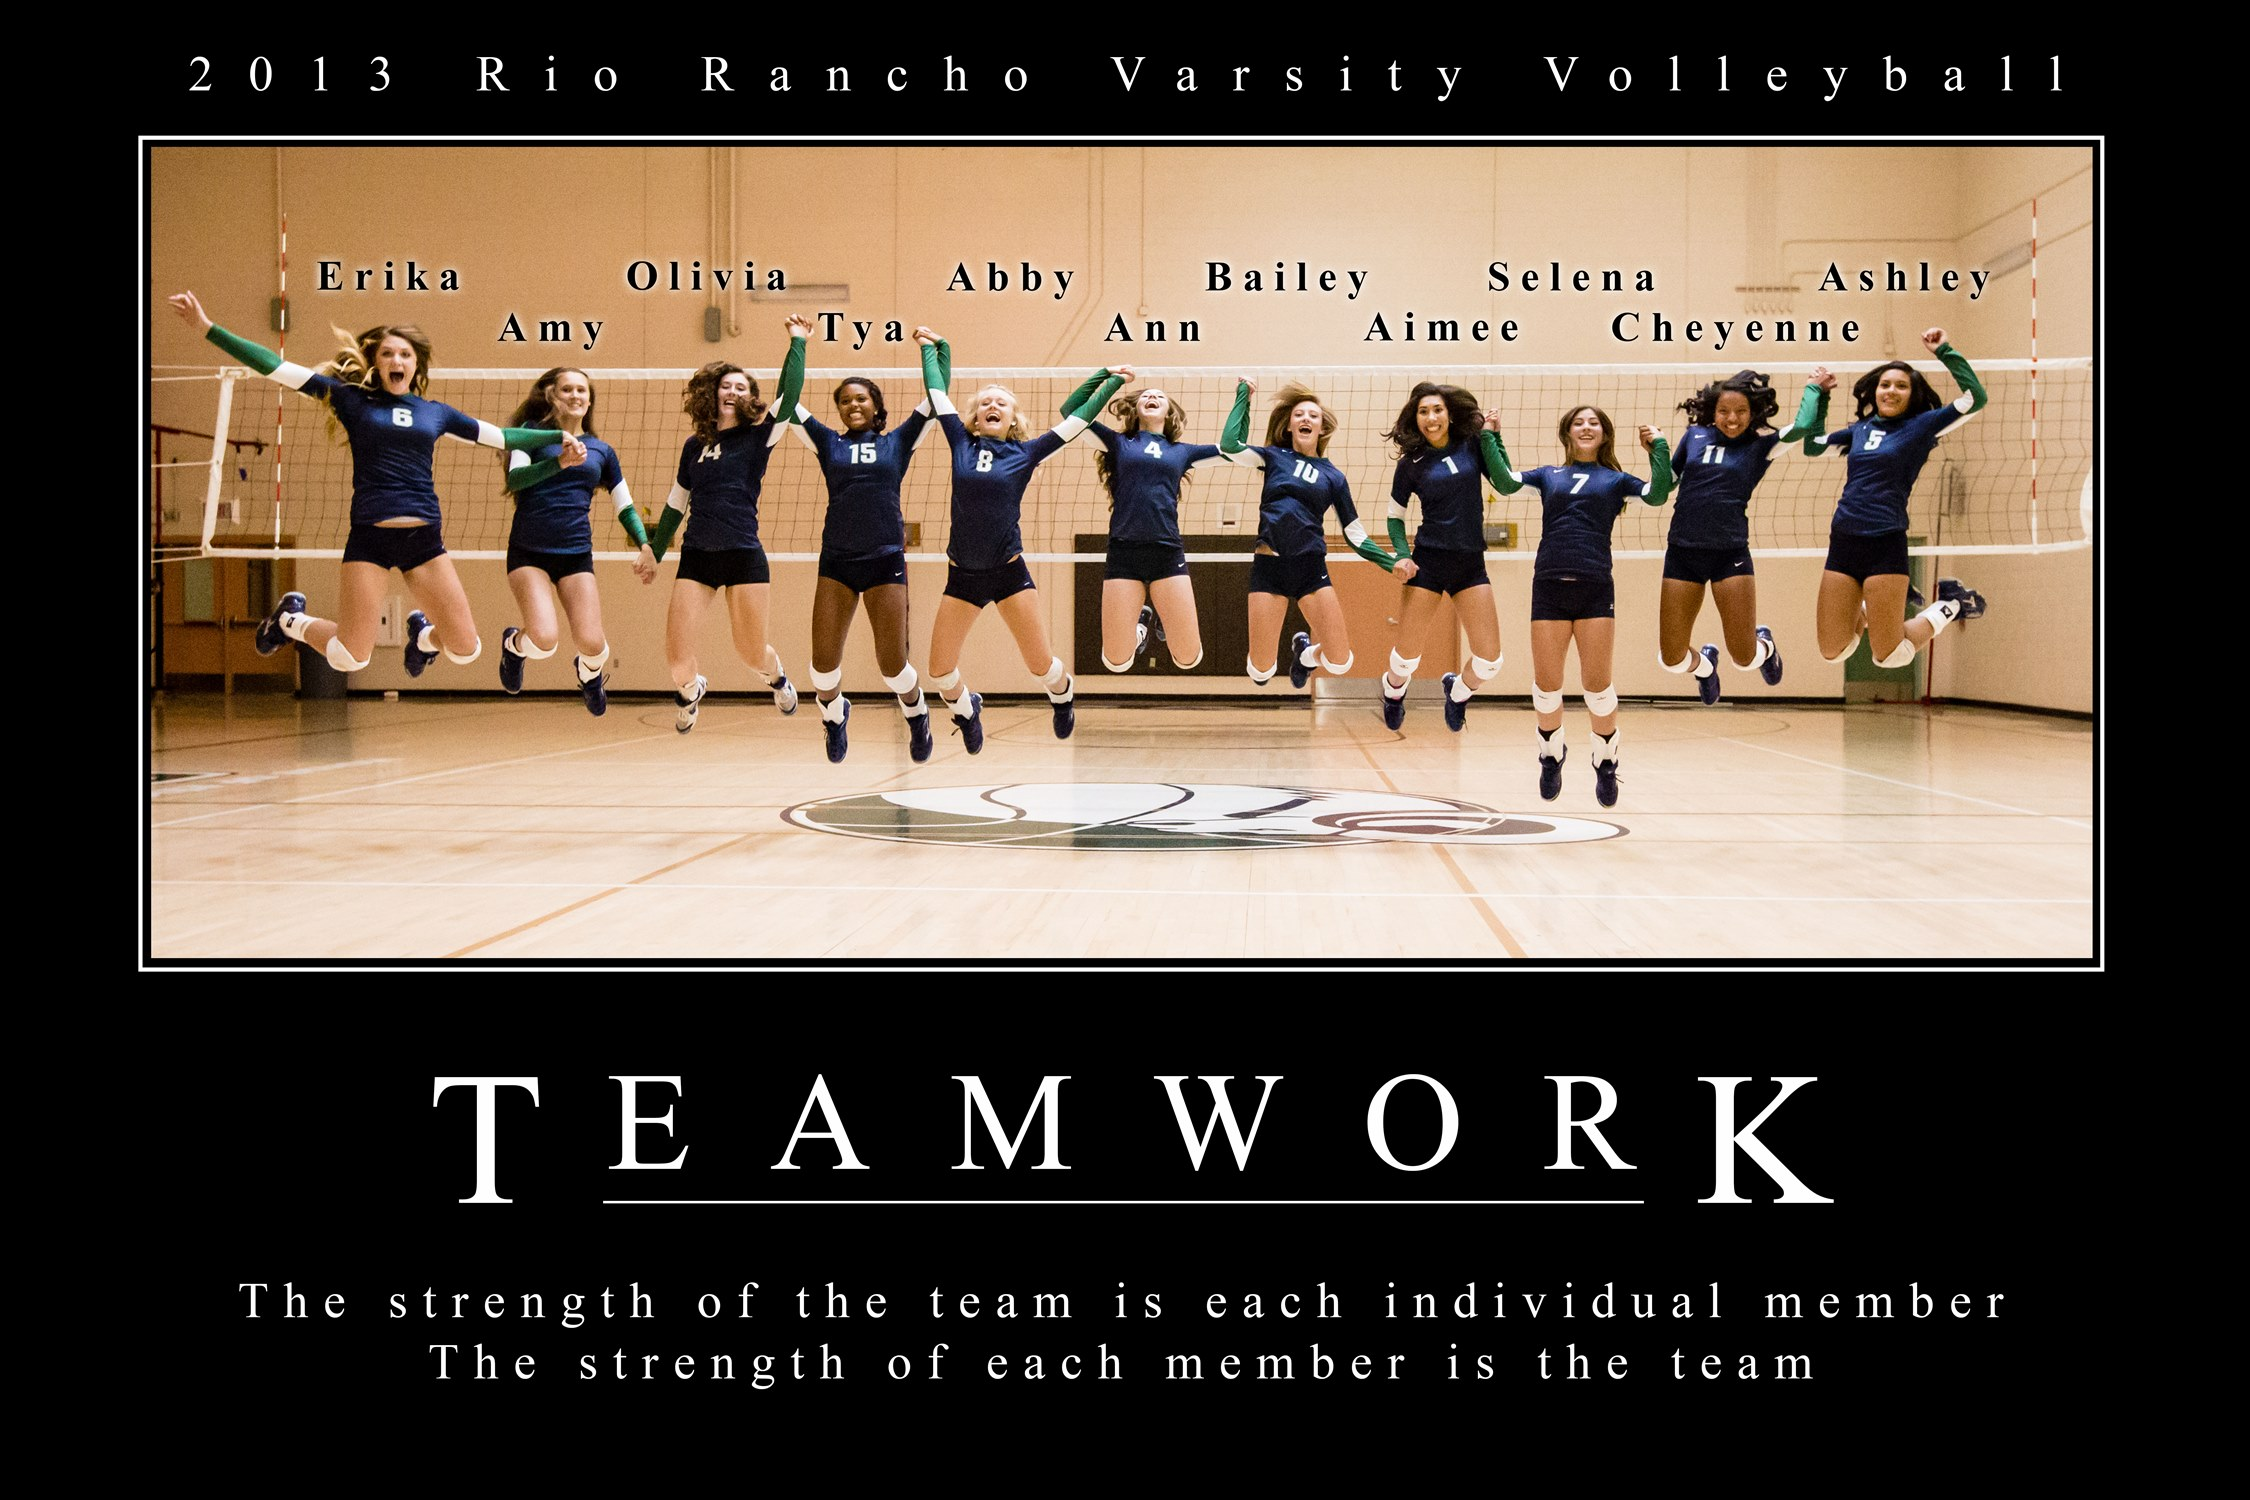 Teamwork Quotes Teamwork Quotes For Volleyball